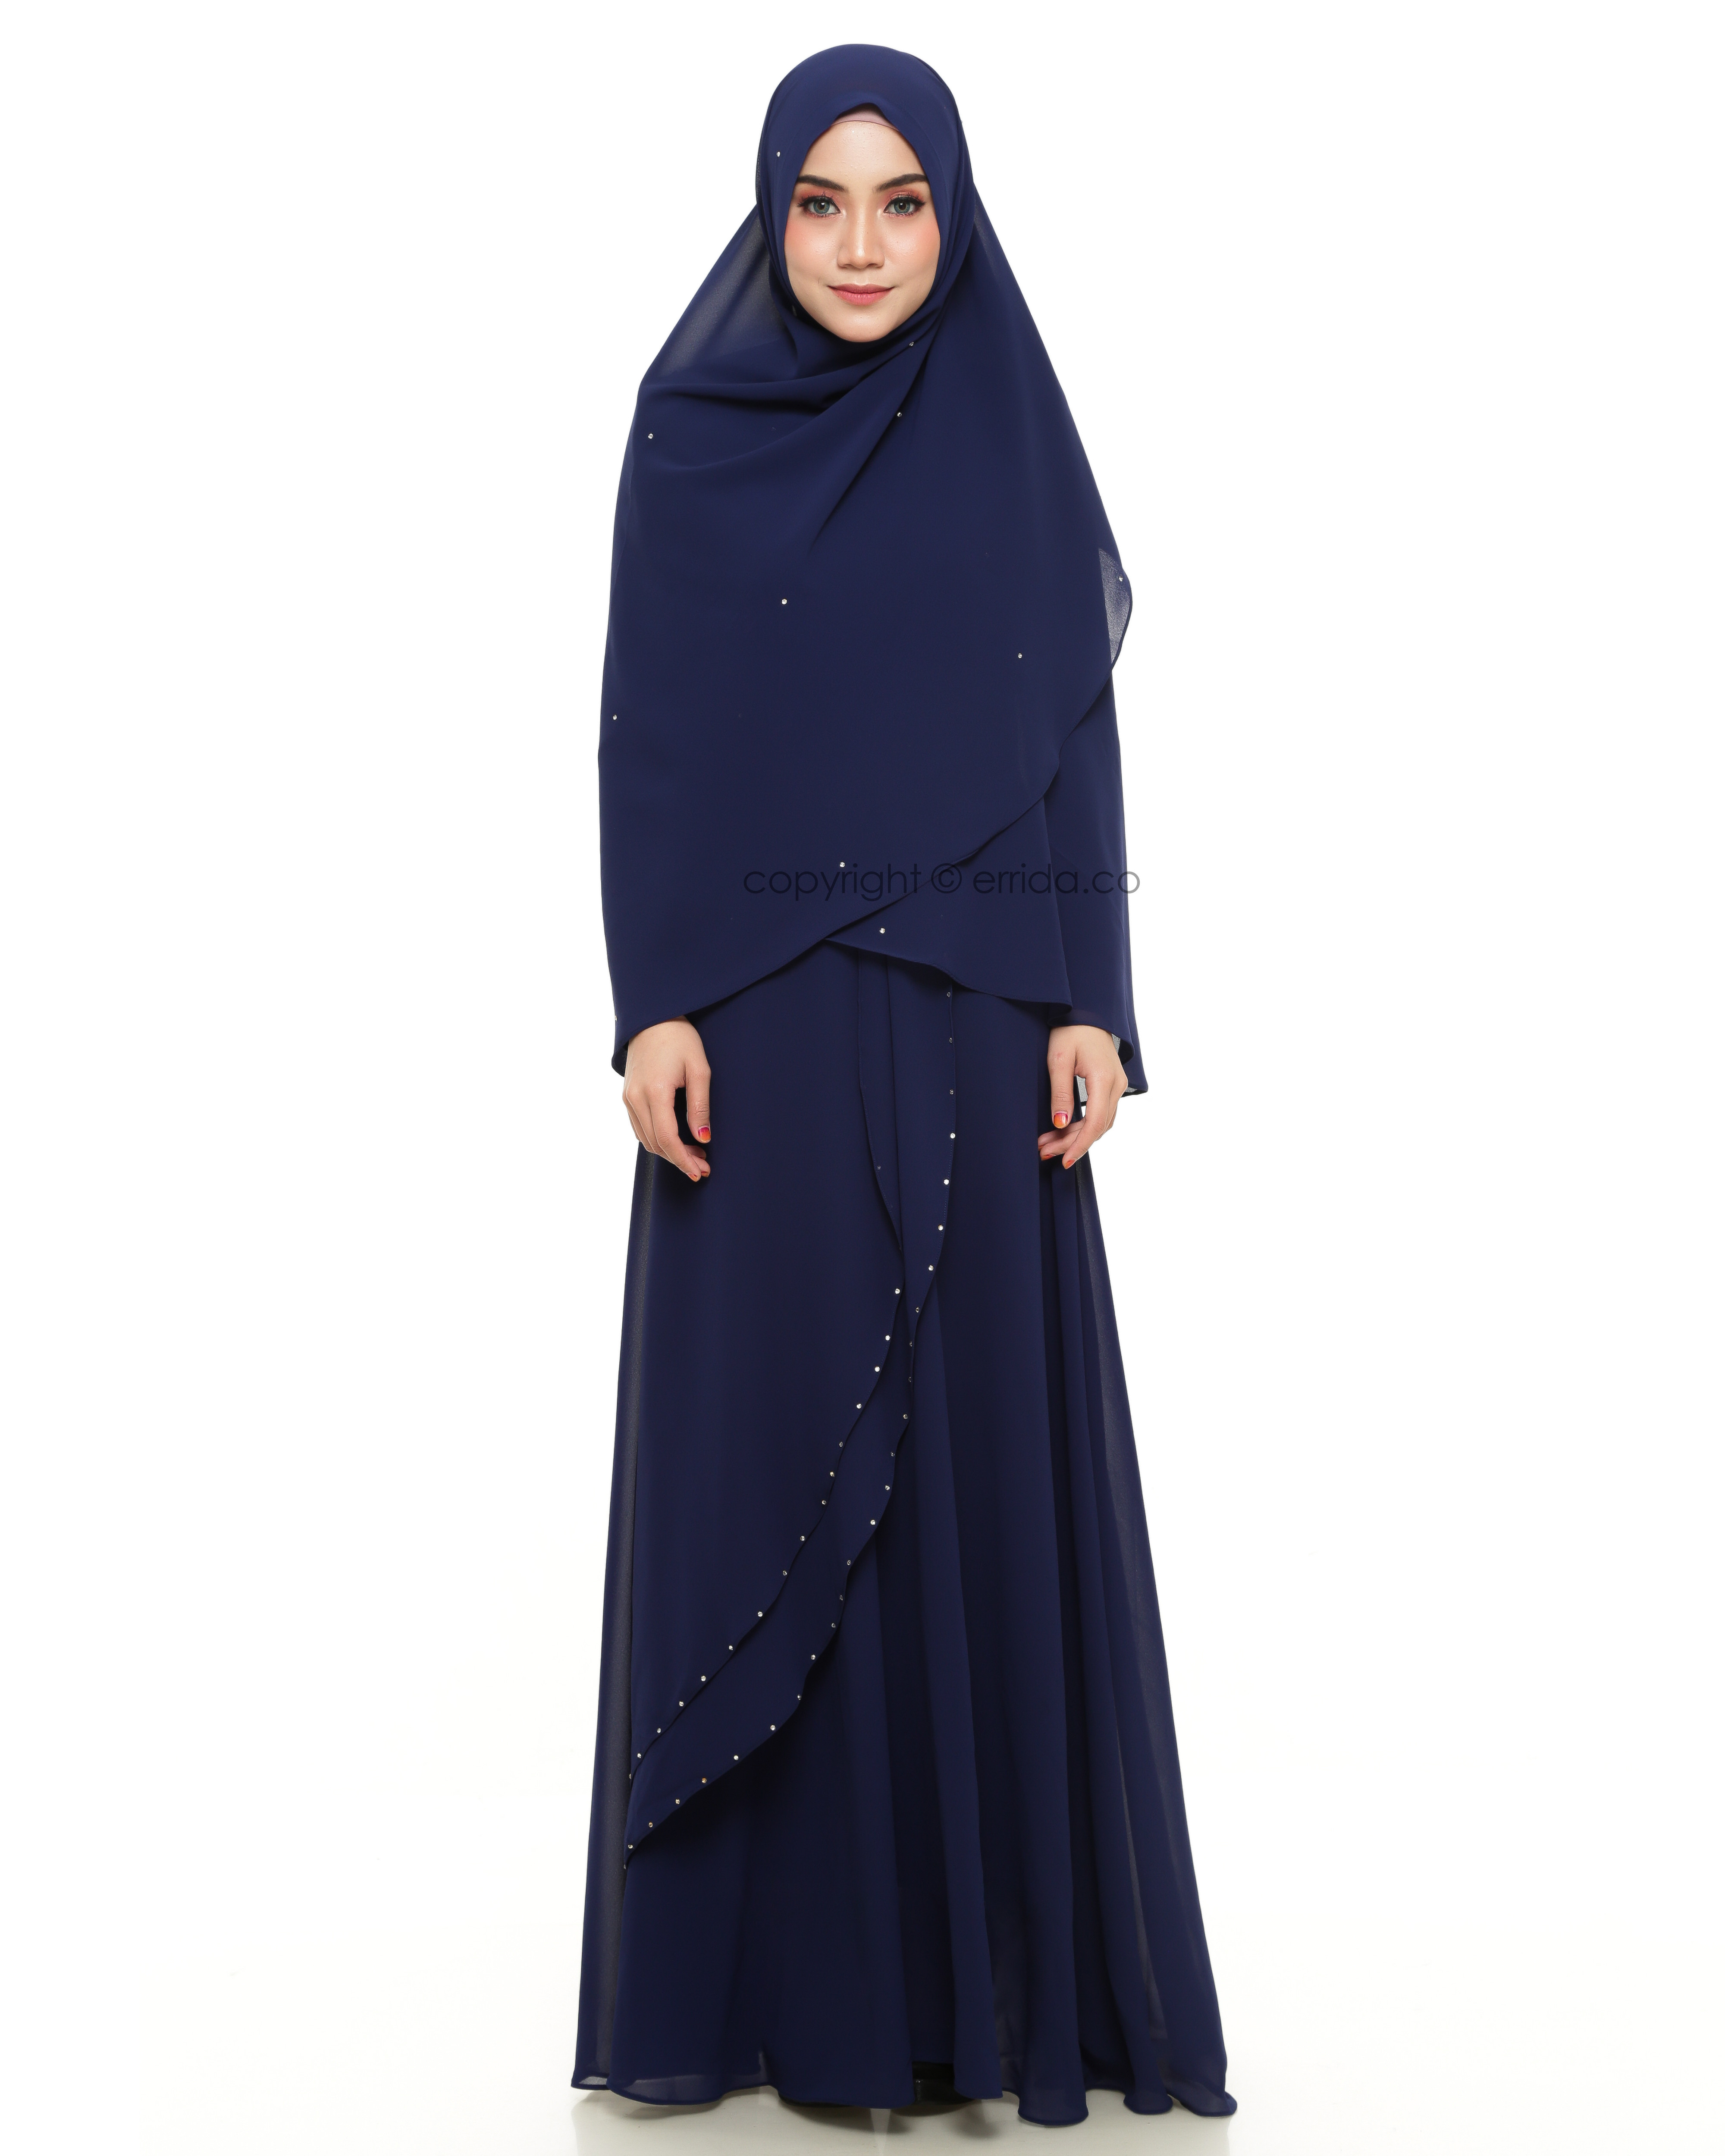 MEDINNA - NAVY BLUE